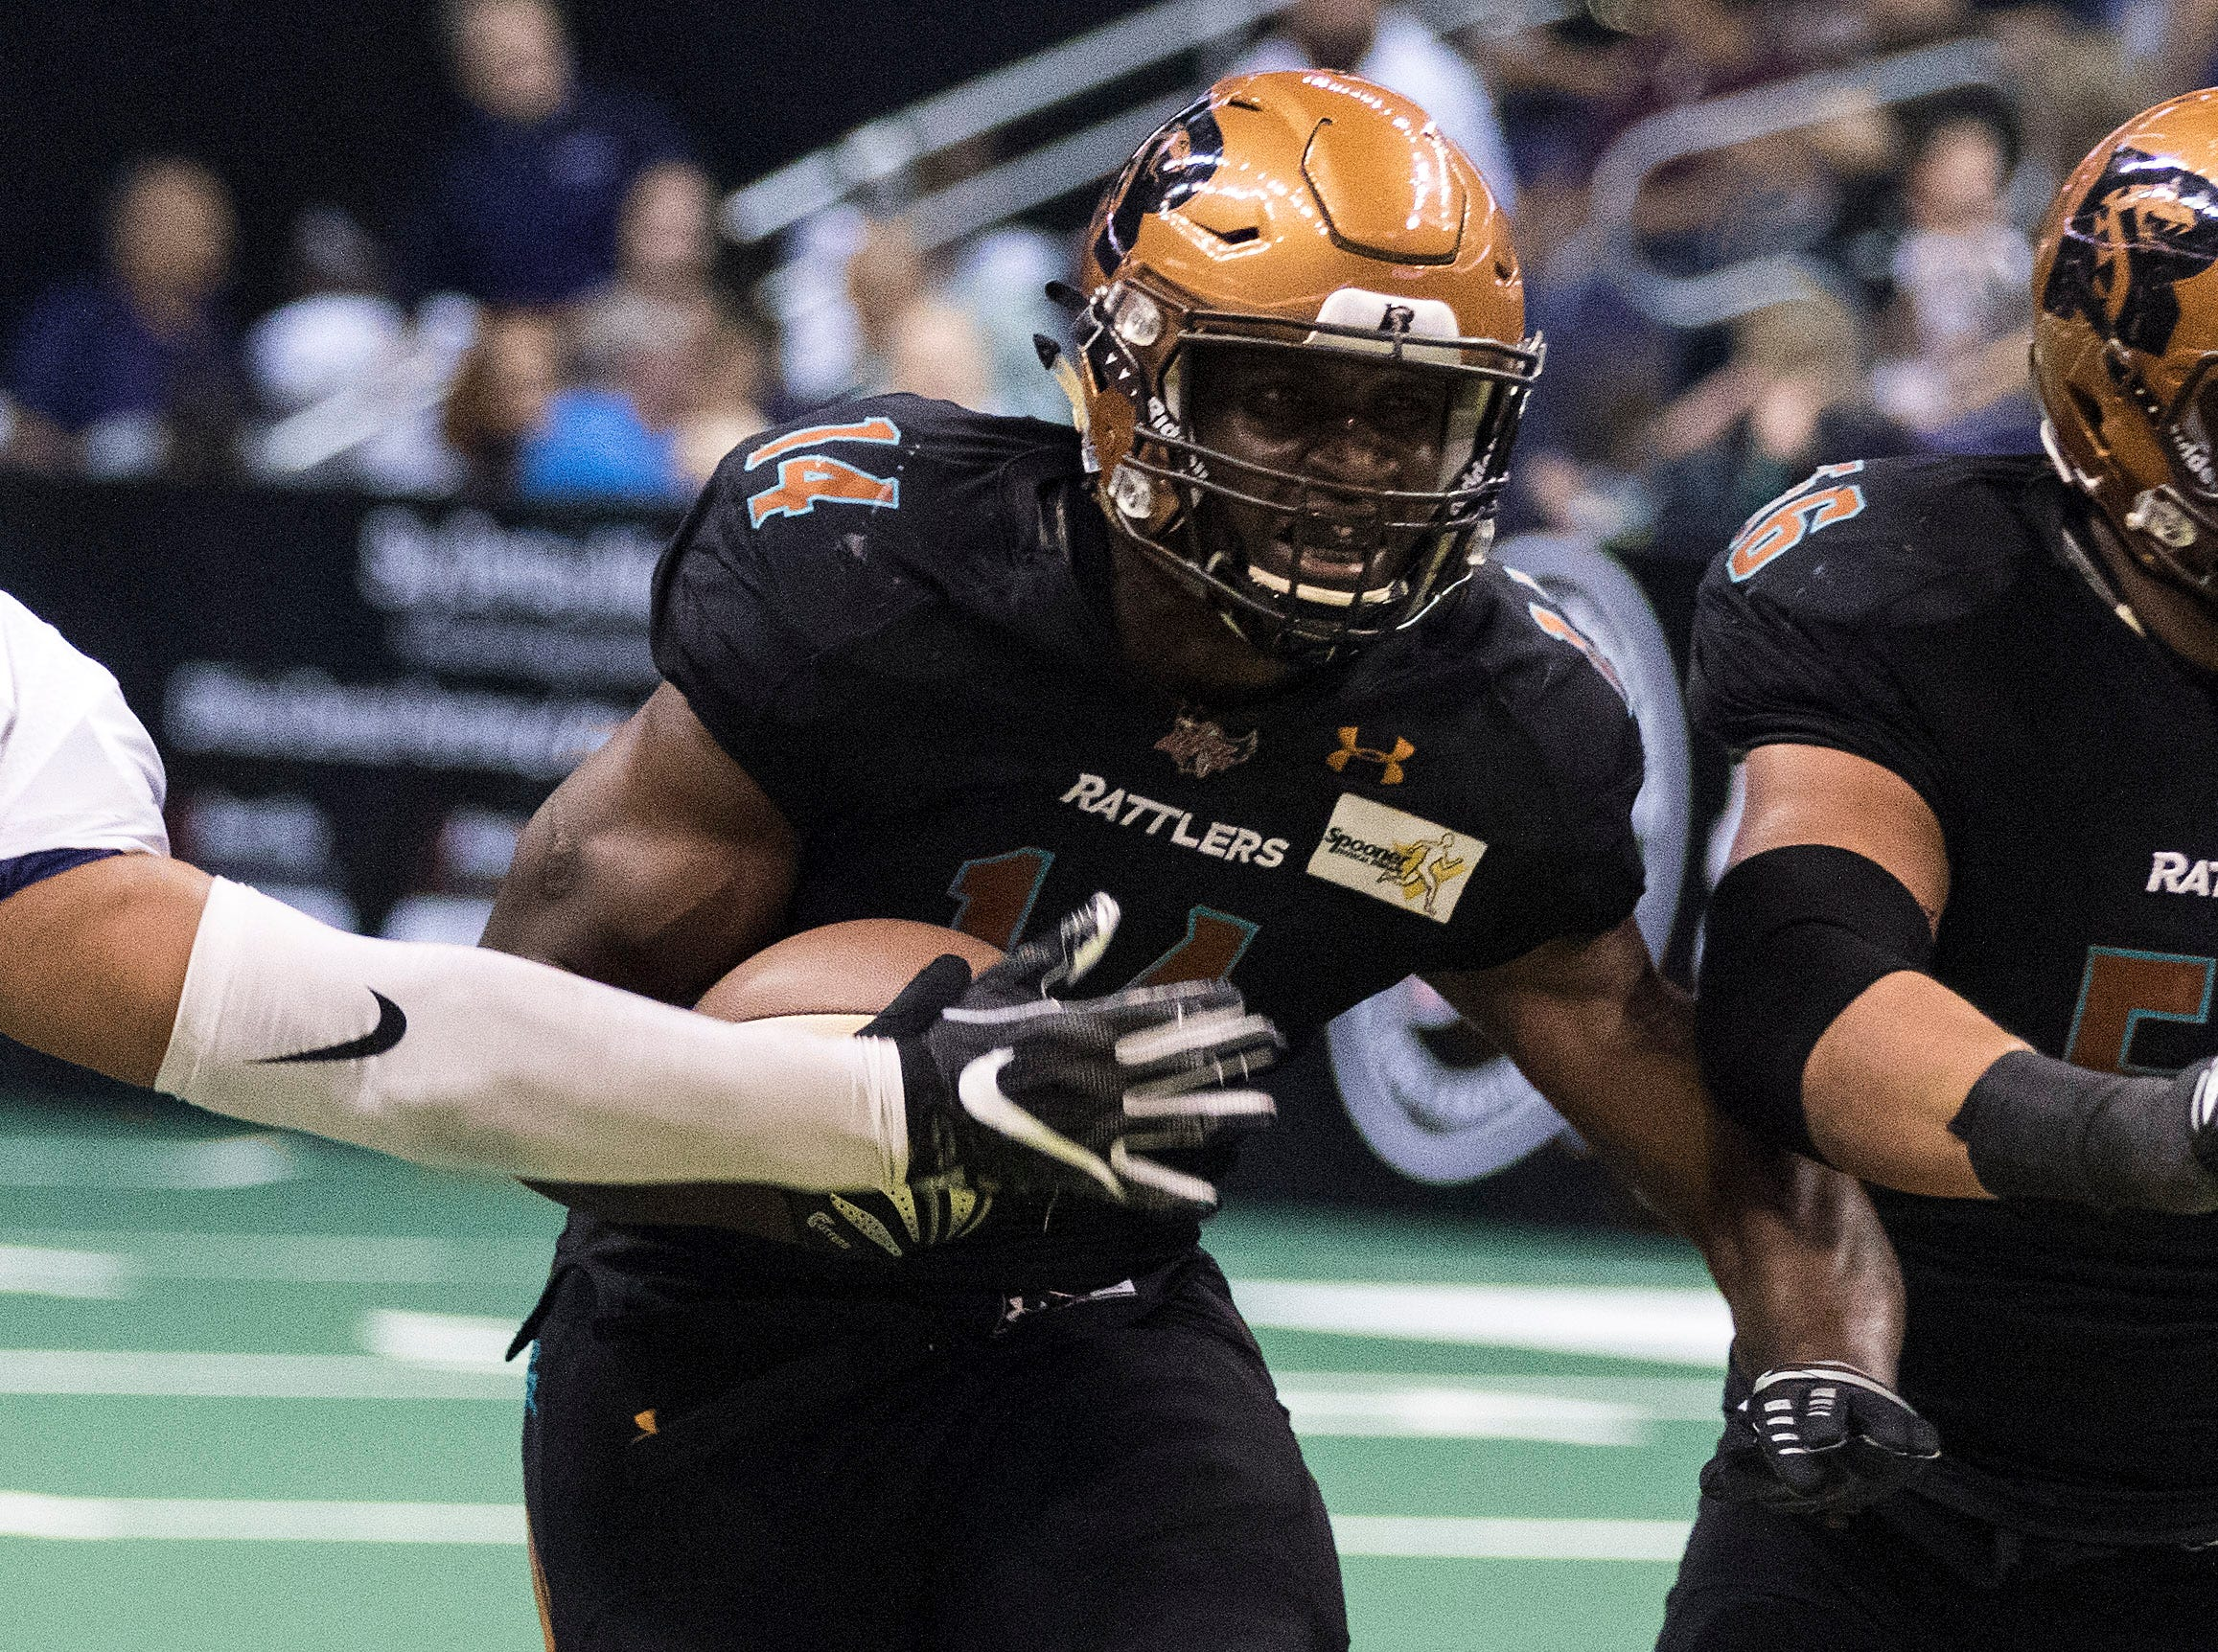 Arizona Rattlers' Darrell Monroe finds a hole against San Diego Strike Force's defense during the first half of their game at Talking Stick Resort Arena in Phoenix Friday, April. 6, 2019.